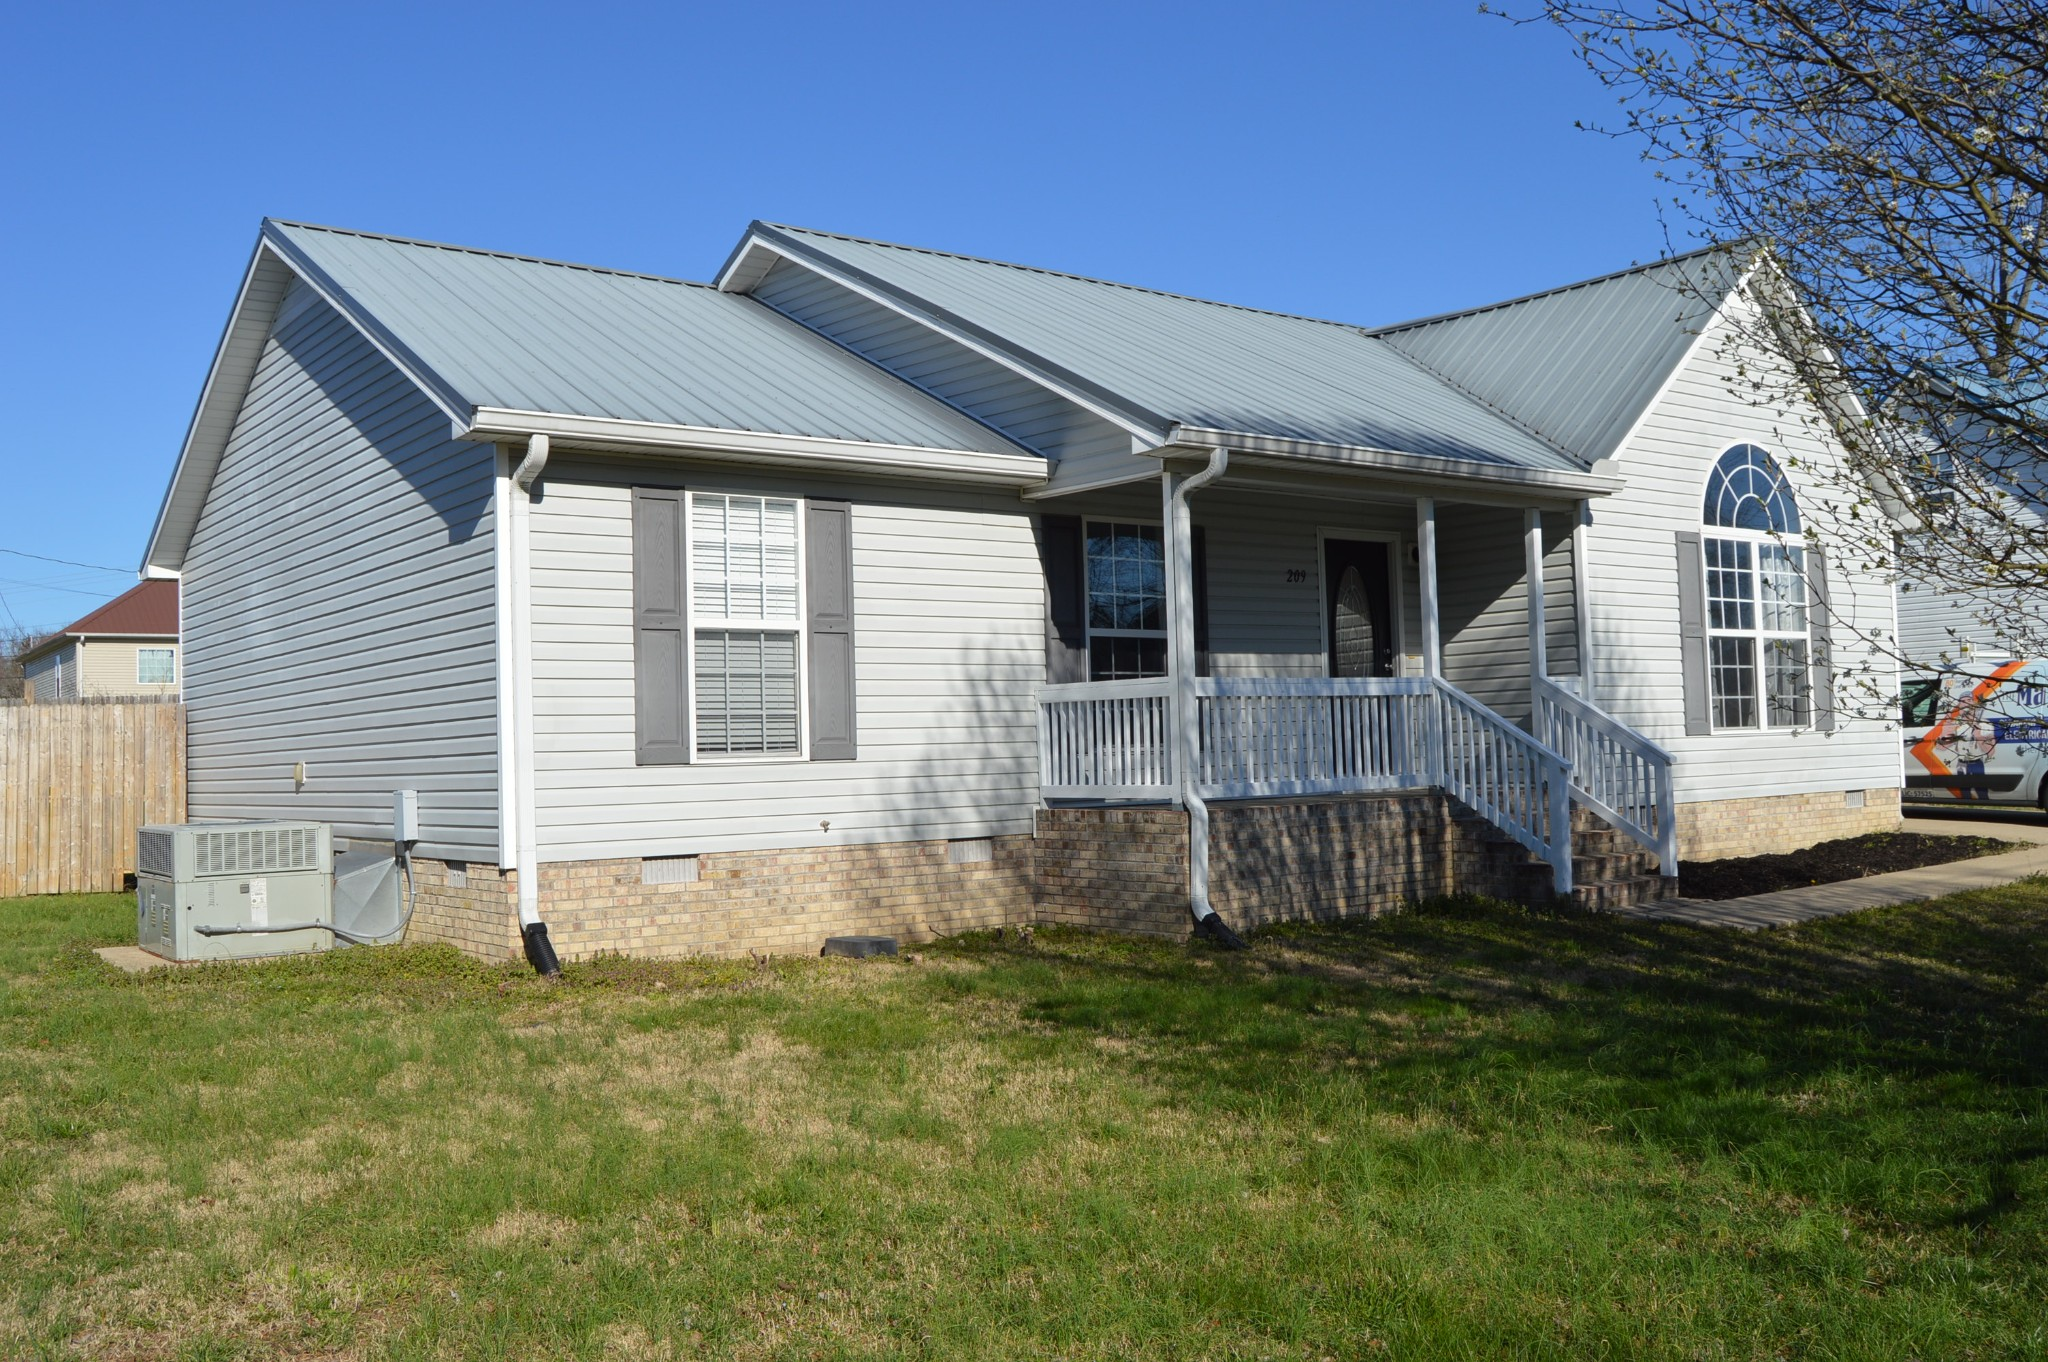 209 Cemetery Rd, Bell Buckle, TN 37020 - Bell Buckle, TN real estate listing